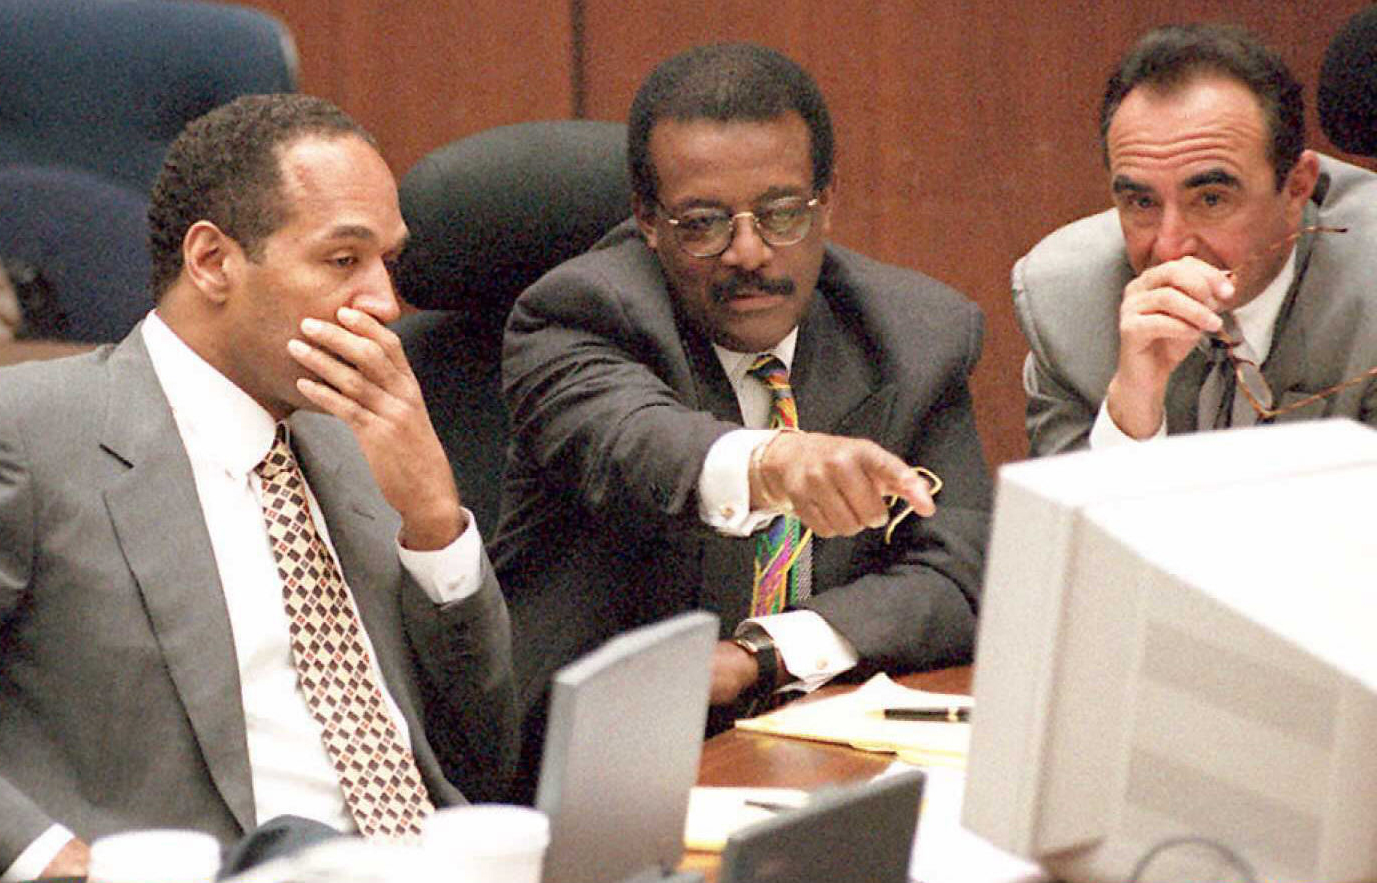 Defense Attorney Johnnie Cochran Jr. (C) points to a screen showing evidence collected at the crime scene as O.J. Simpson (L) and attorney Robert Shapiro (R) look on 11 April during the O.J. Simpson murder trial. Los Angeles police detective Dennis Fung is testifying during the morning session.